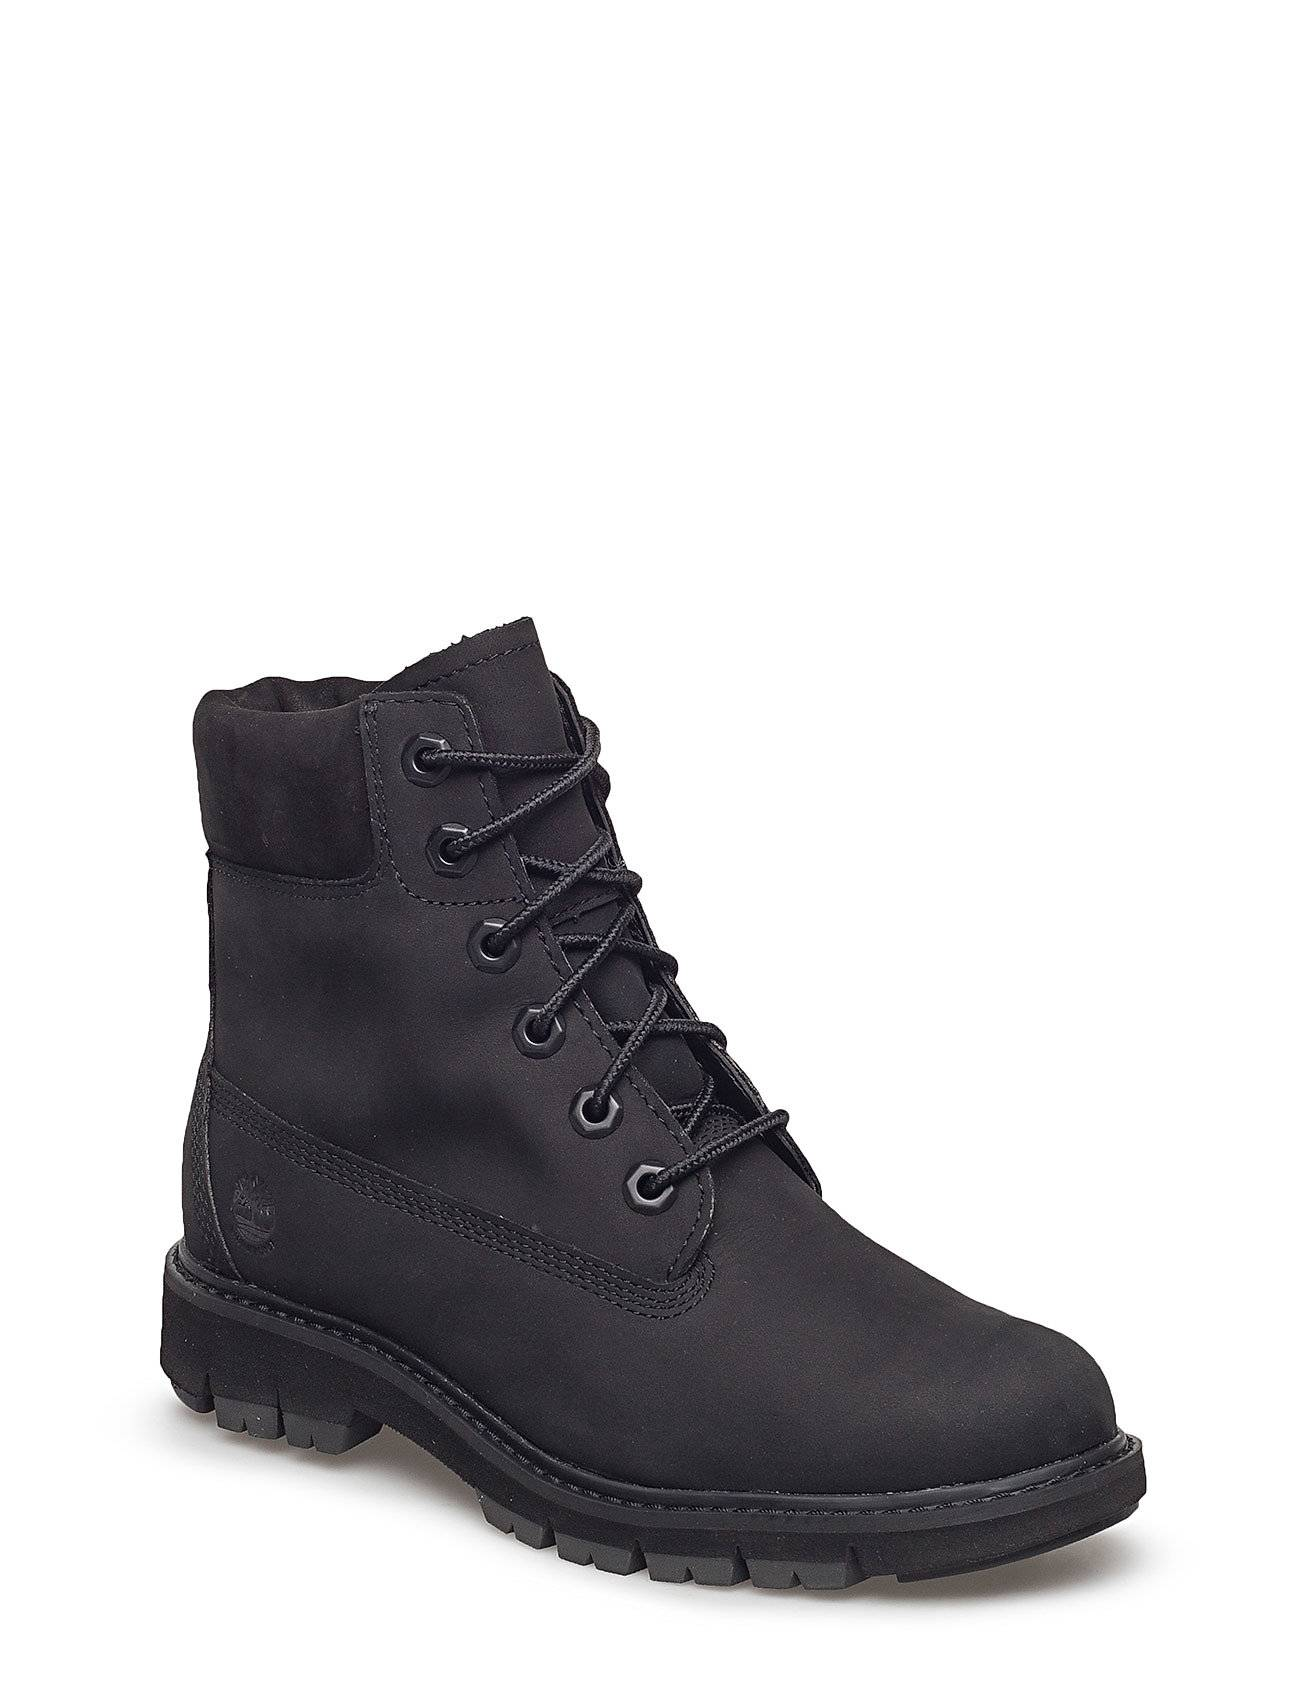 Timberland Lucia Way 6in Boot Wp Shoes Boots Ankle Boots Ankle Boot - Flat Musta Timberland